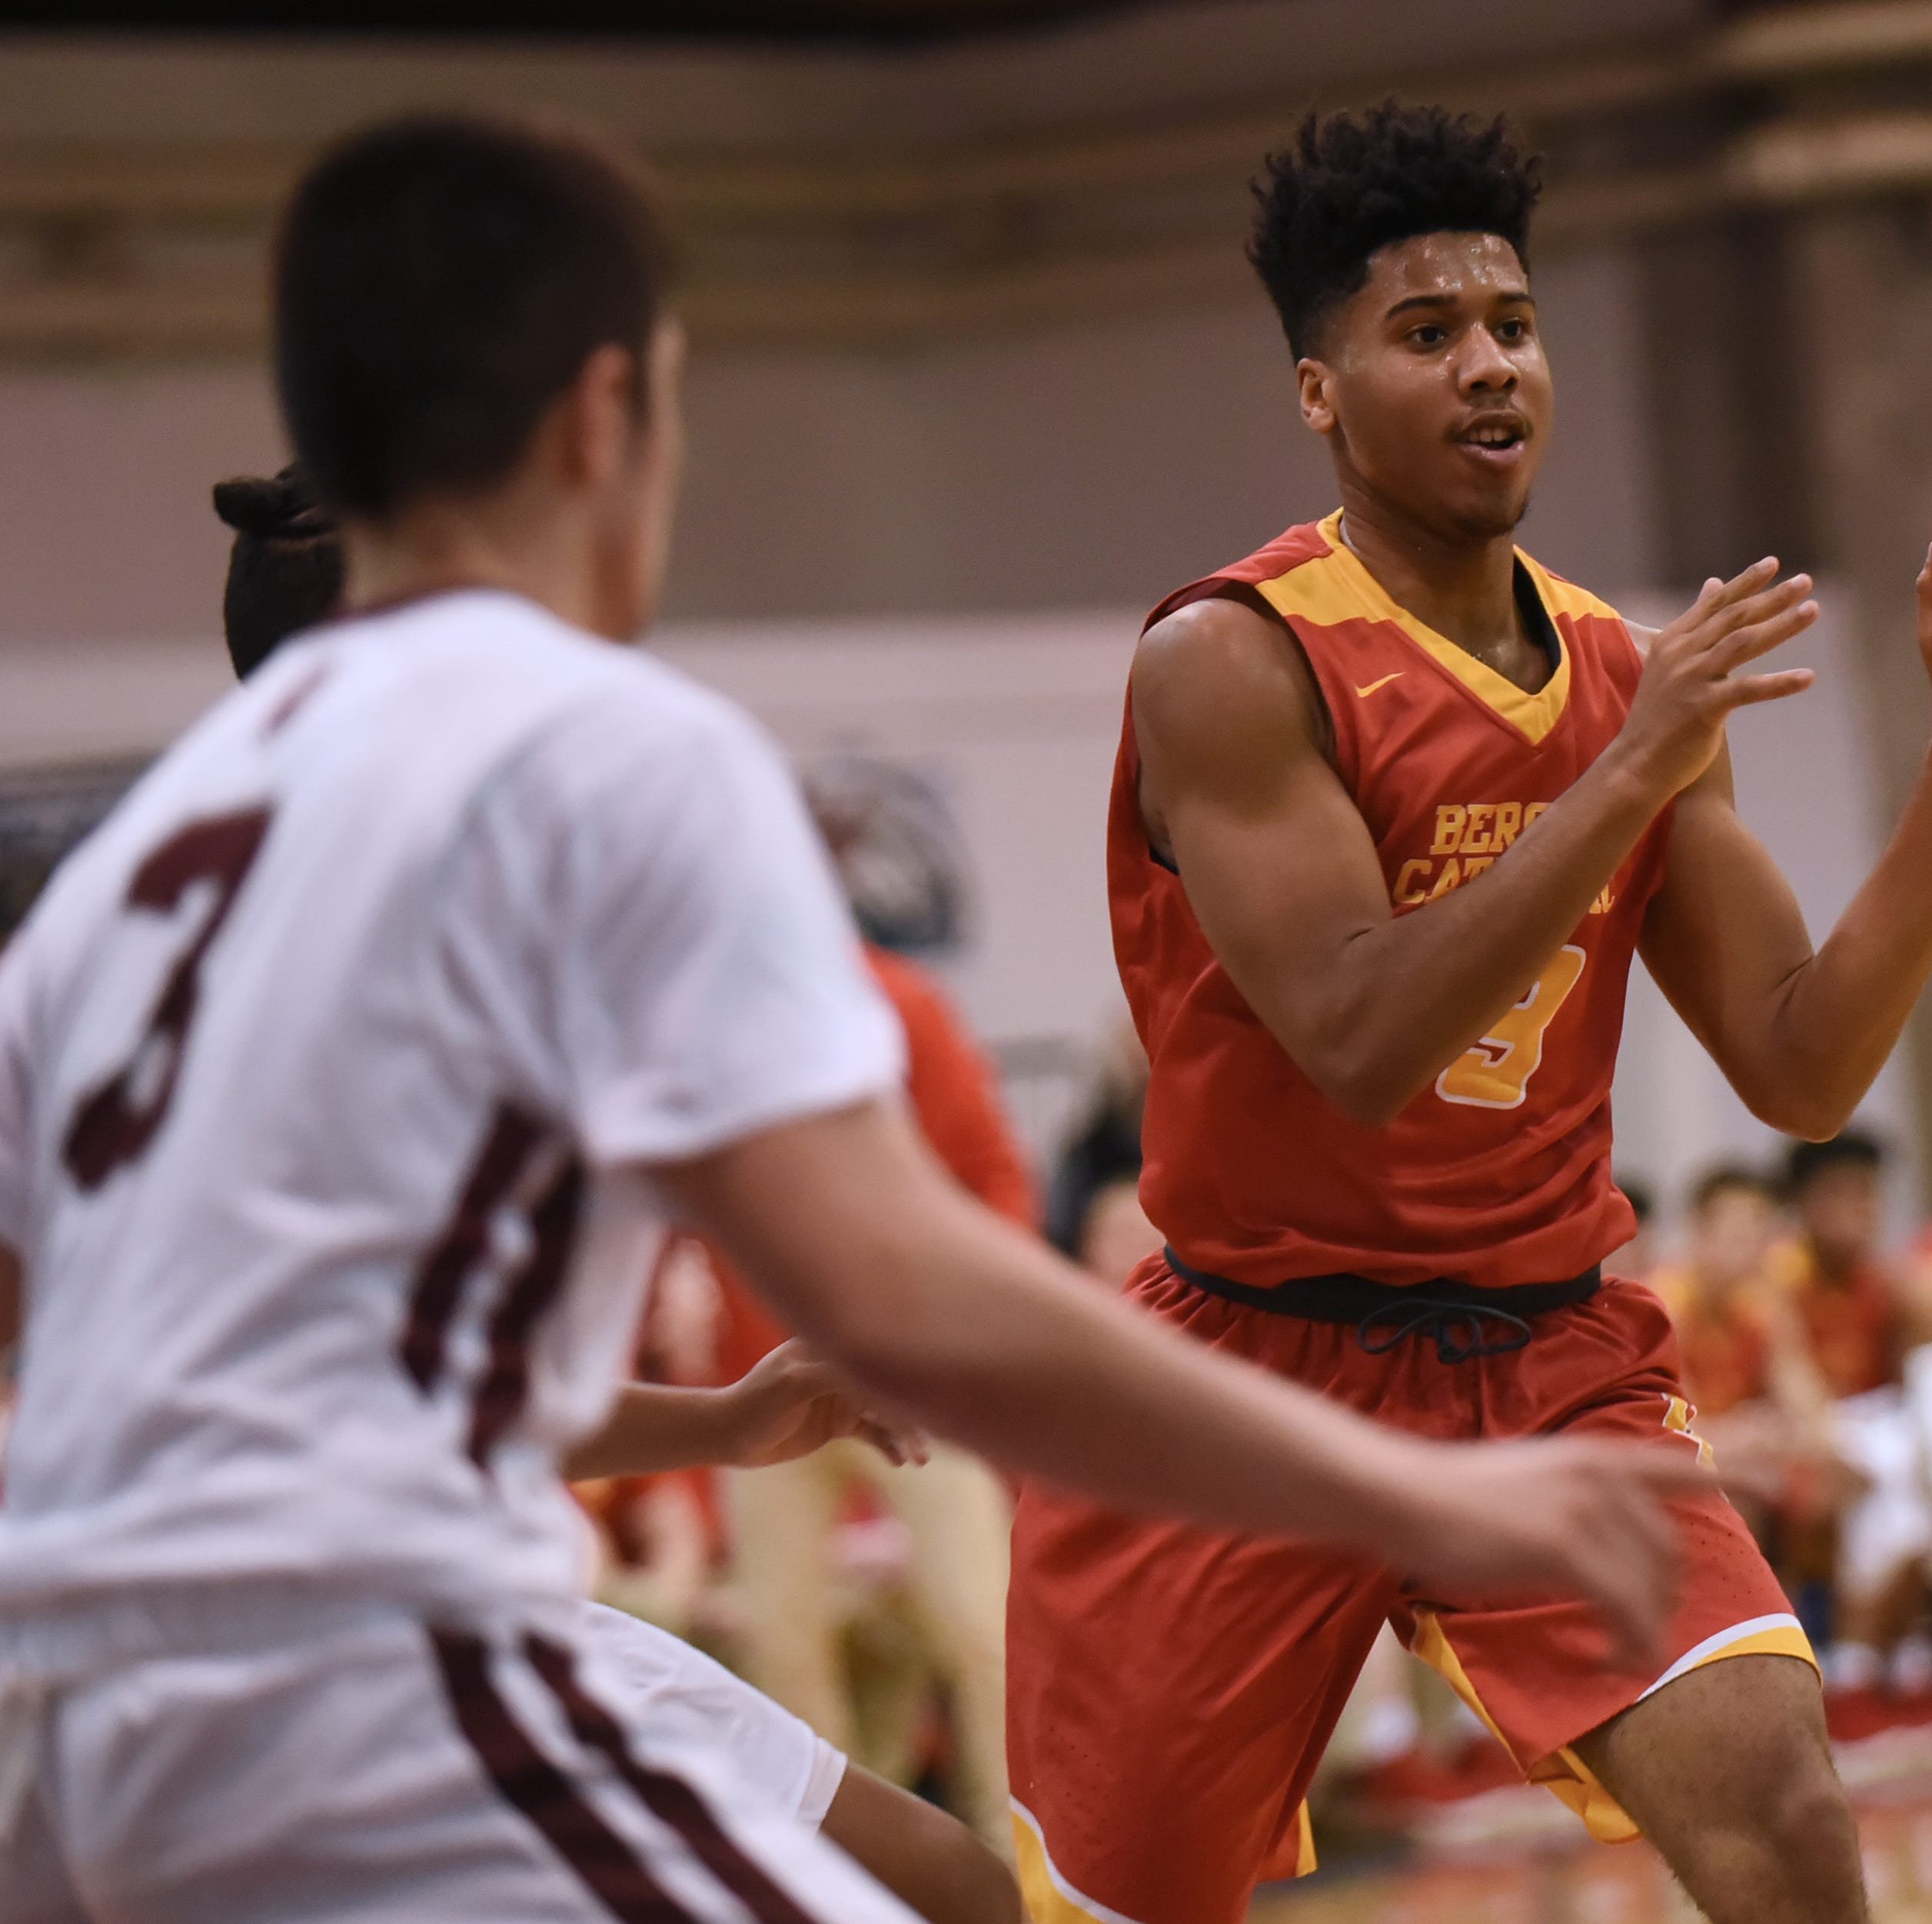 Bergen County Jamboree 2019 live blog: Bergen Catholic beats Don Bosco